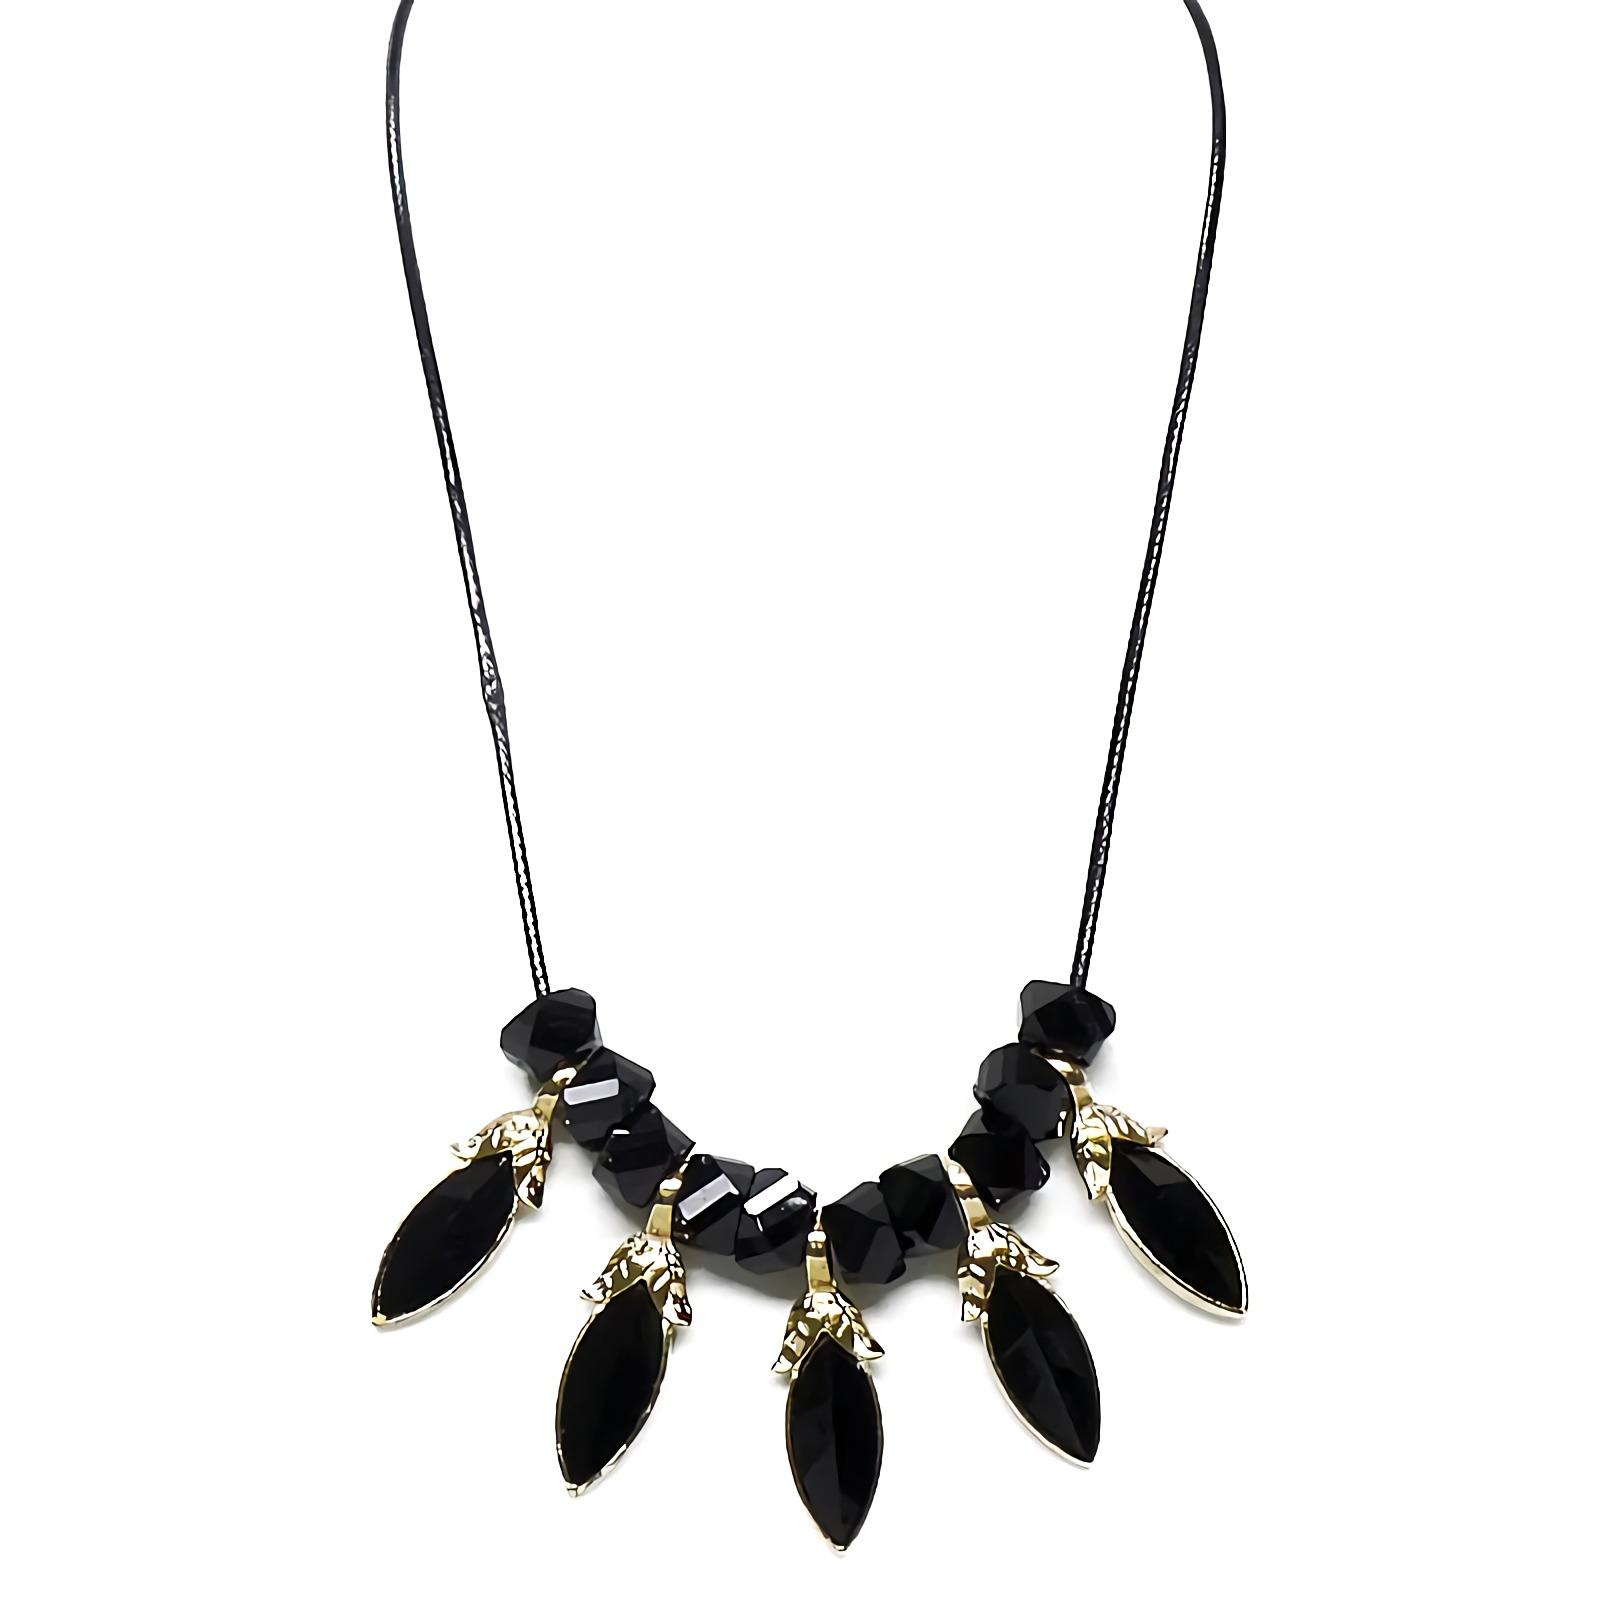 OFASHION Aksesoris Kalung CA-180314-K012 Necklace Fashion Xuping Jewelry Hitam Hitam